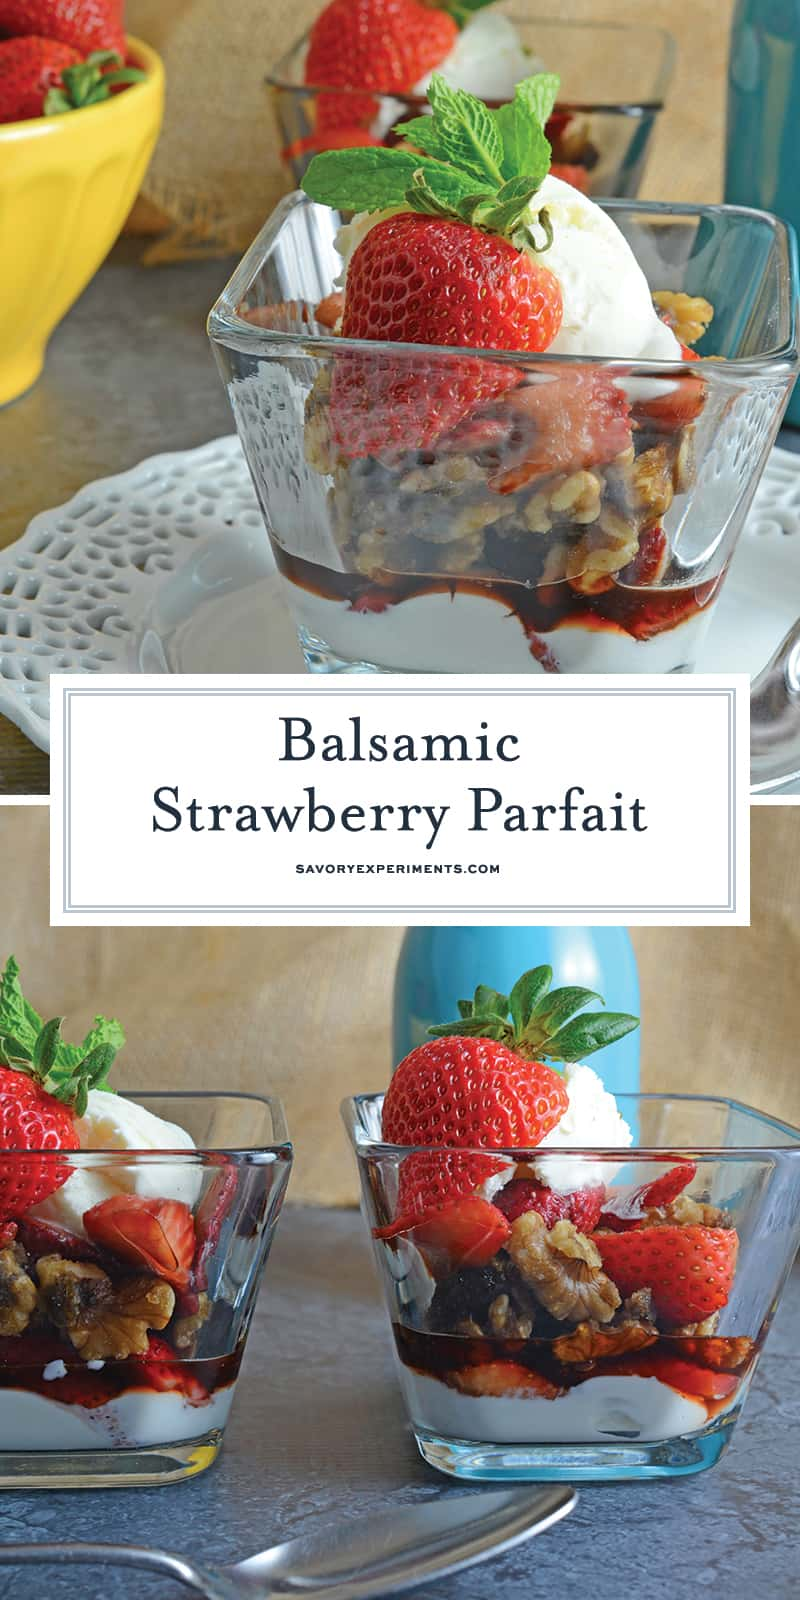 Balsamic Strawberry Yogurt Parfait makes for an easy dessert recipe with layers of ice cream, yogurt, whipped cream, macerated strawberries and candied walnuts! #yogurtparfait #fruitparfait #parfaitrecipe www.savoryexperiments.com